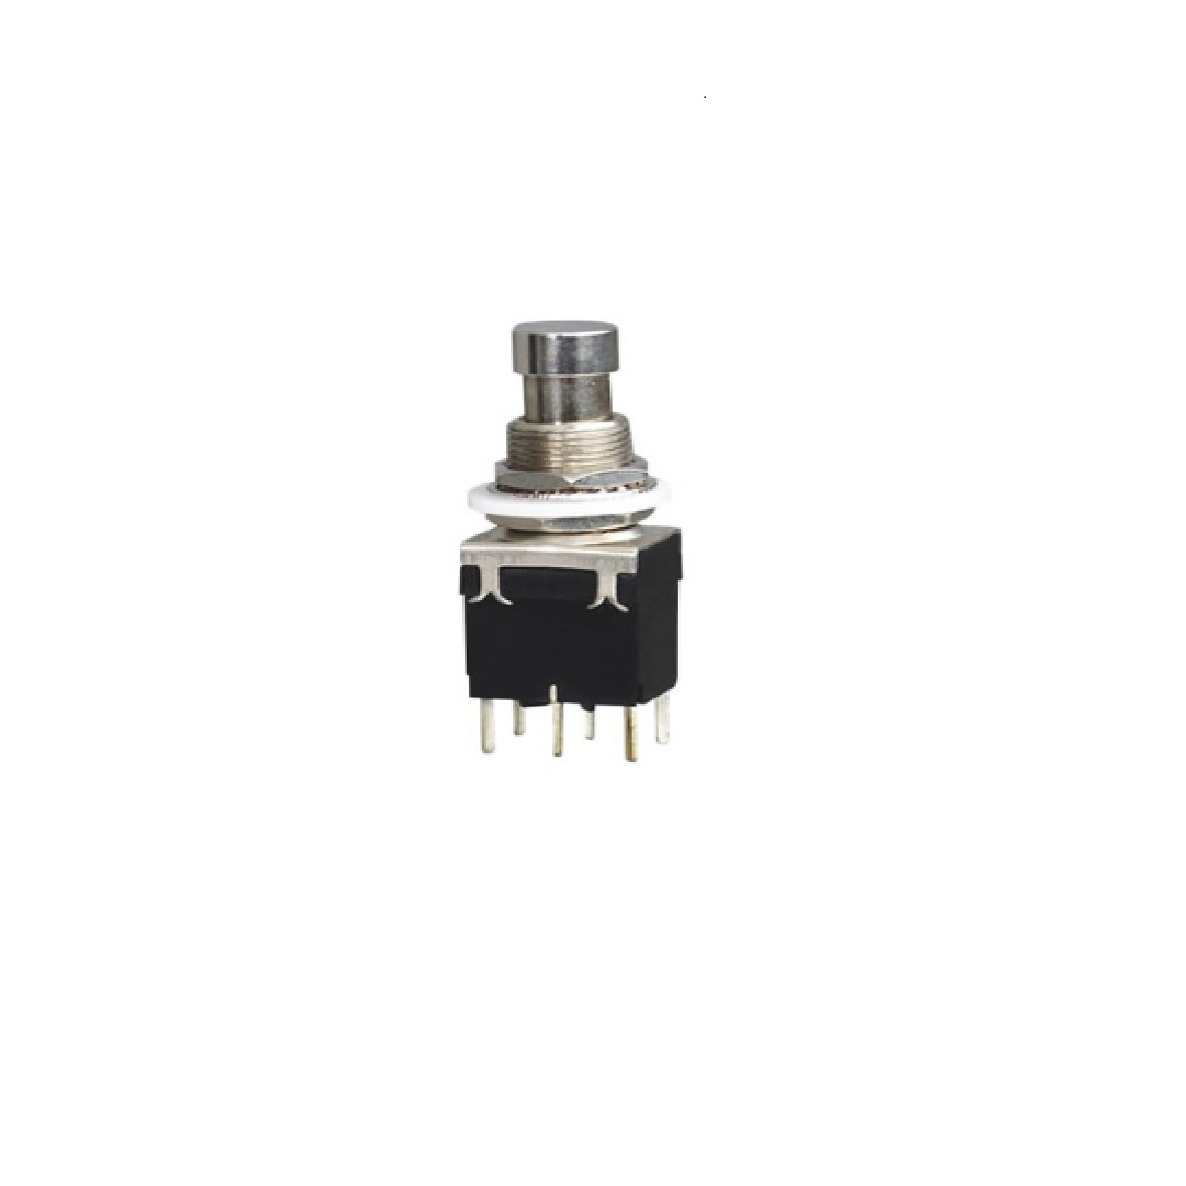 hight resolution of 3pcs dpdt momentary on on pushbutton switches 6pin 12mm guitar effect push button